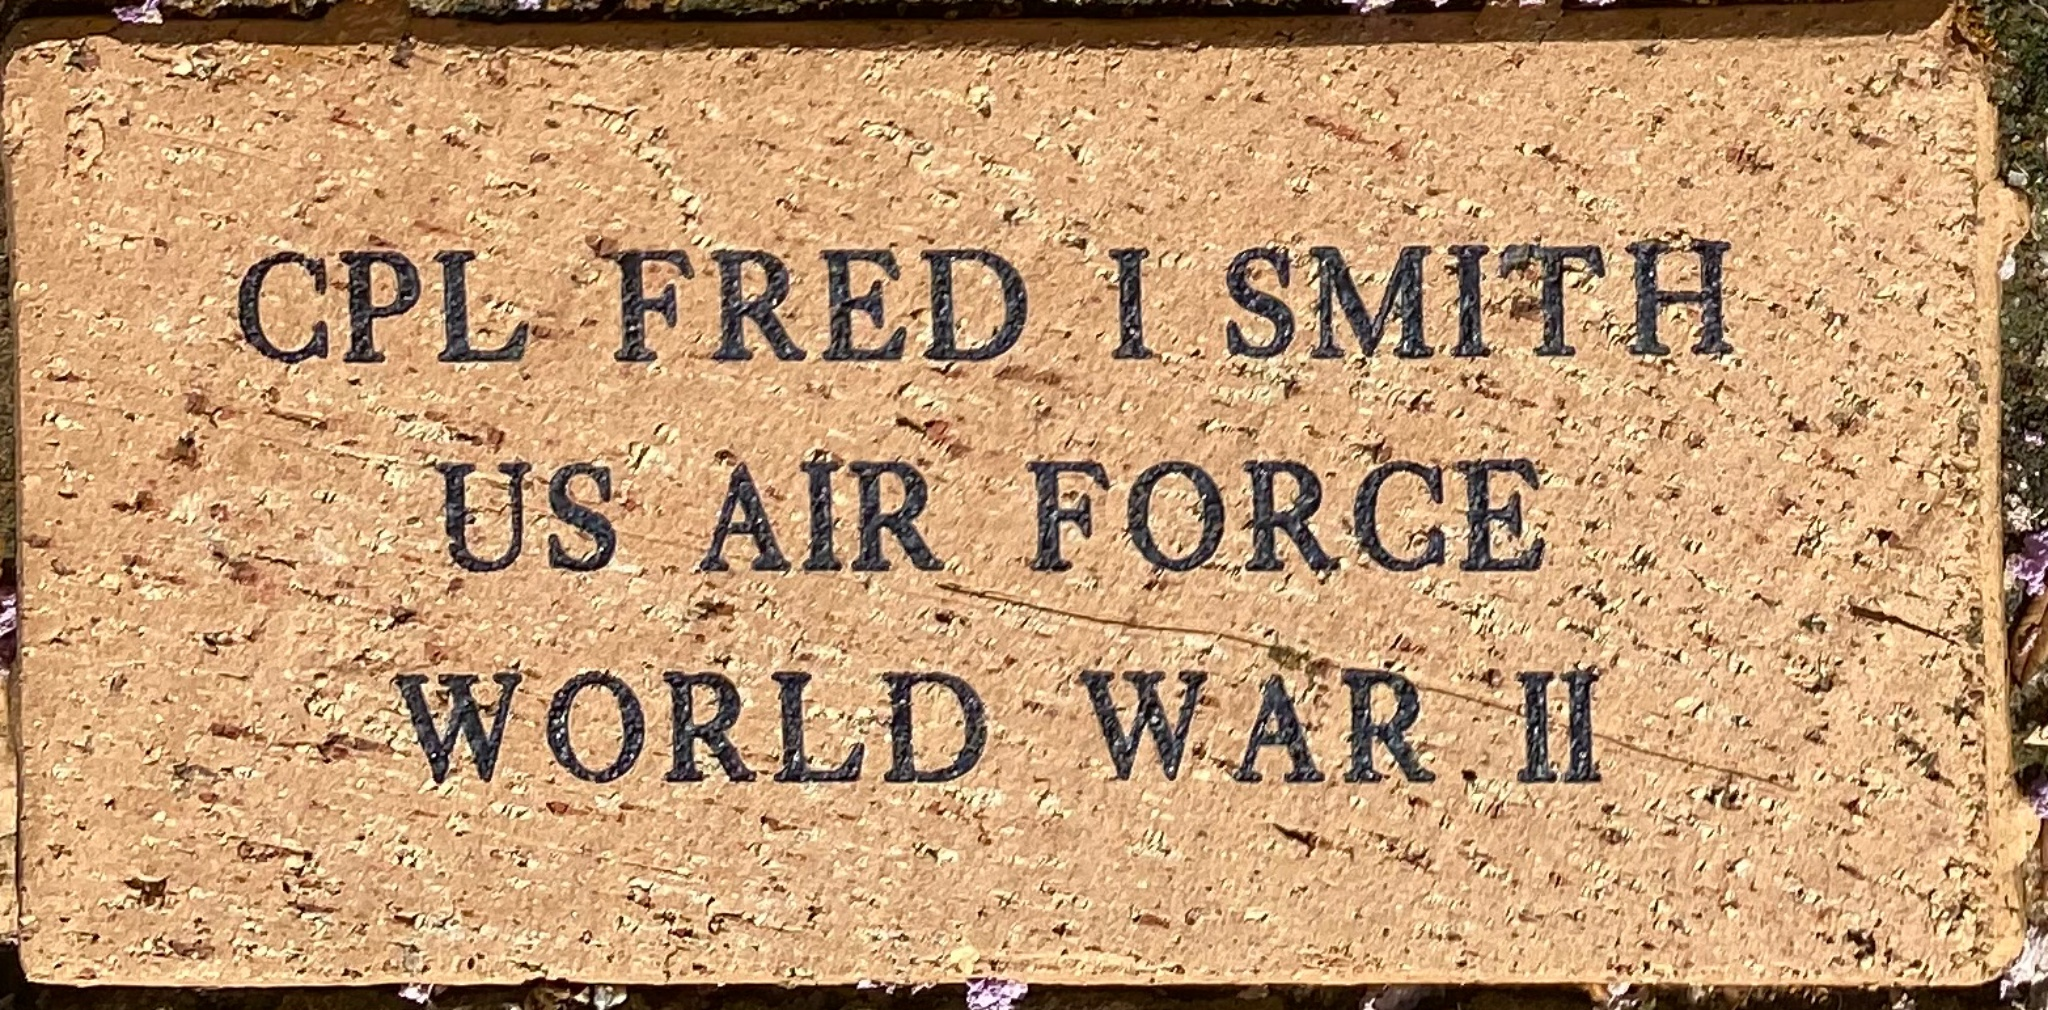 CPL FRED I SMITH US AIR FORCE WORLD WAR II